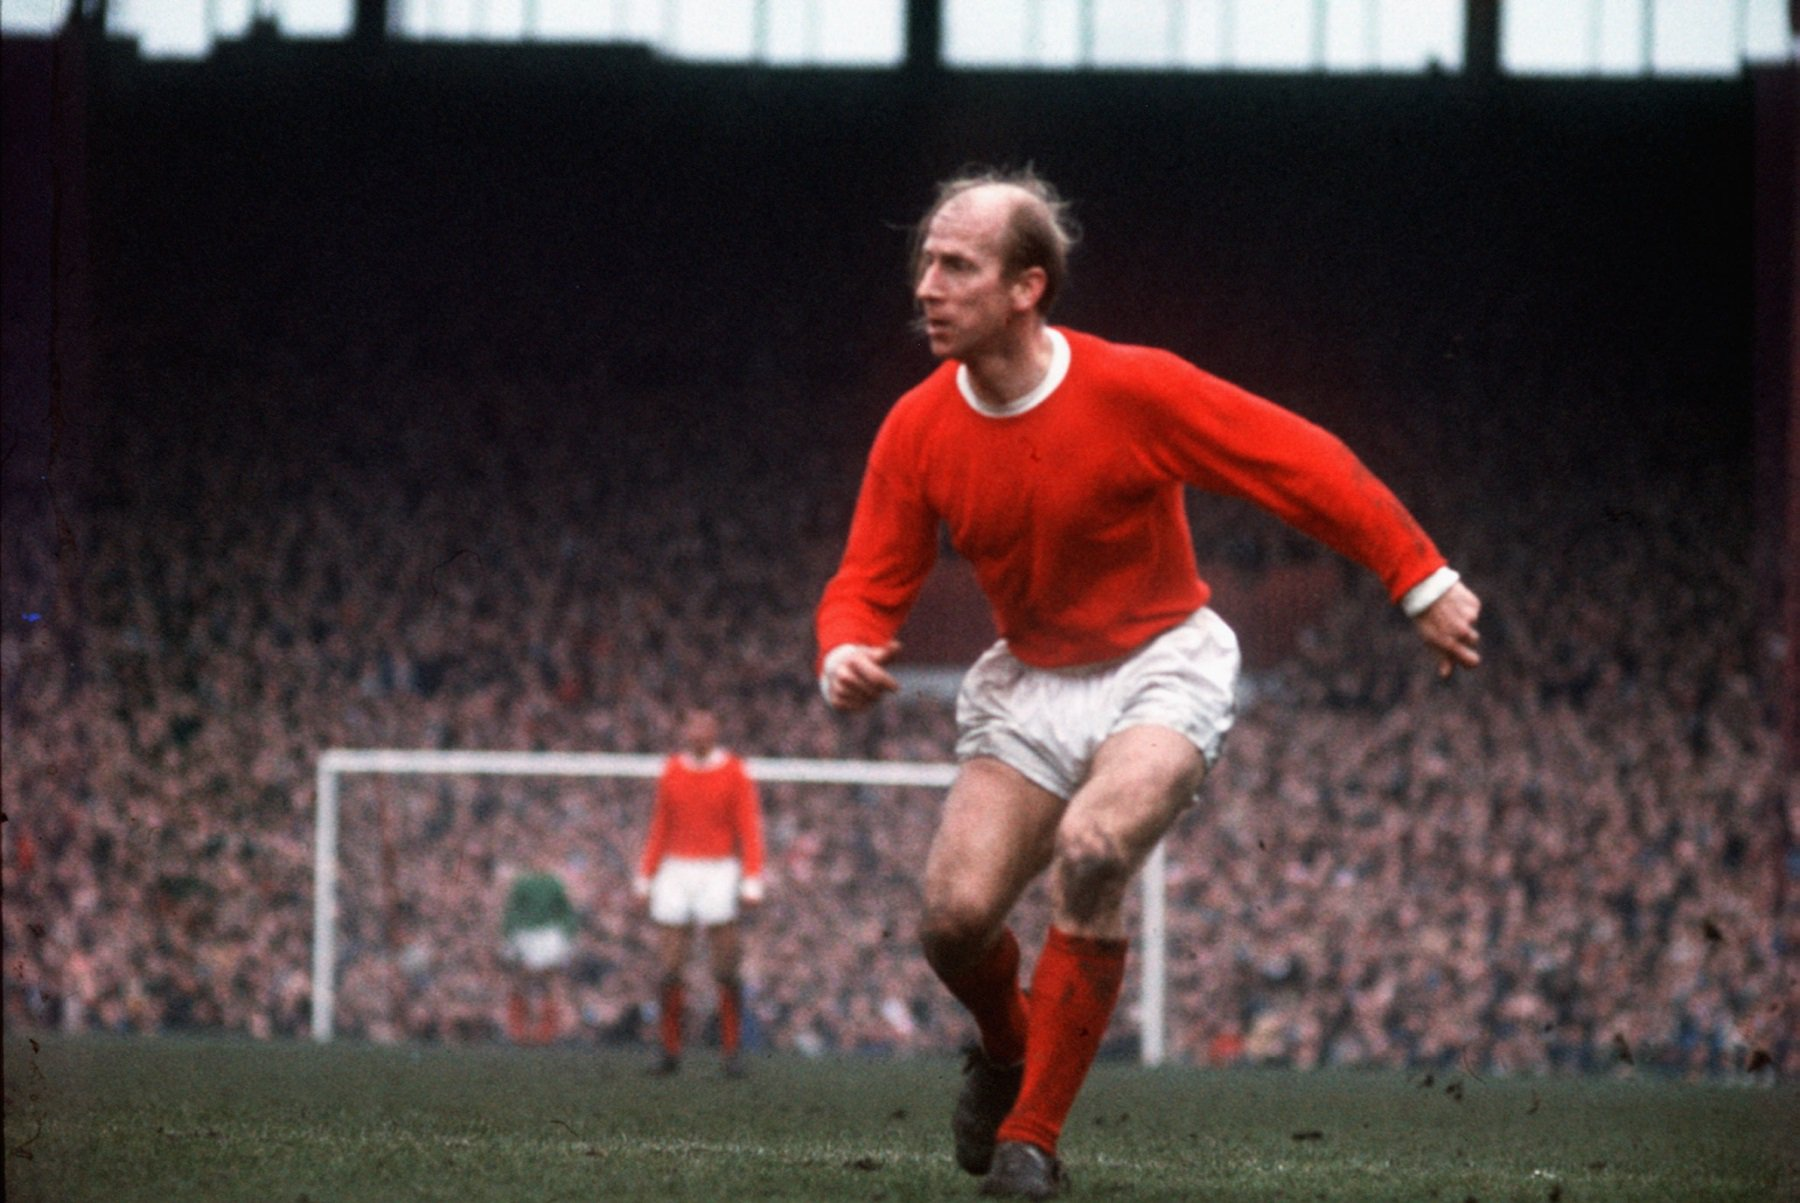 Happy birthday to United legend Sir Bobby Charlton, who turns 81 today